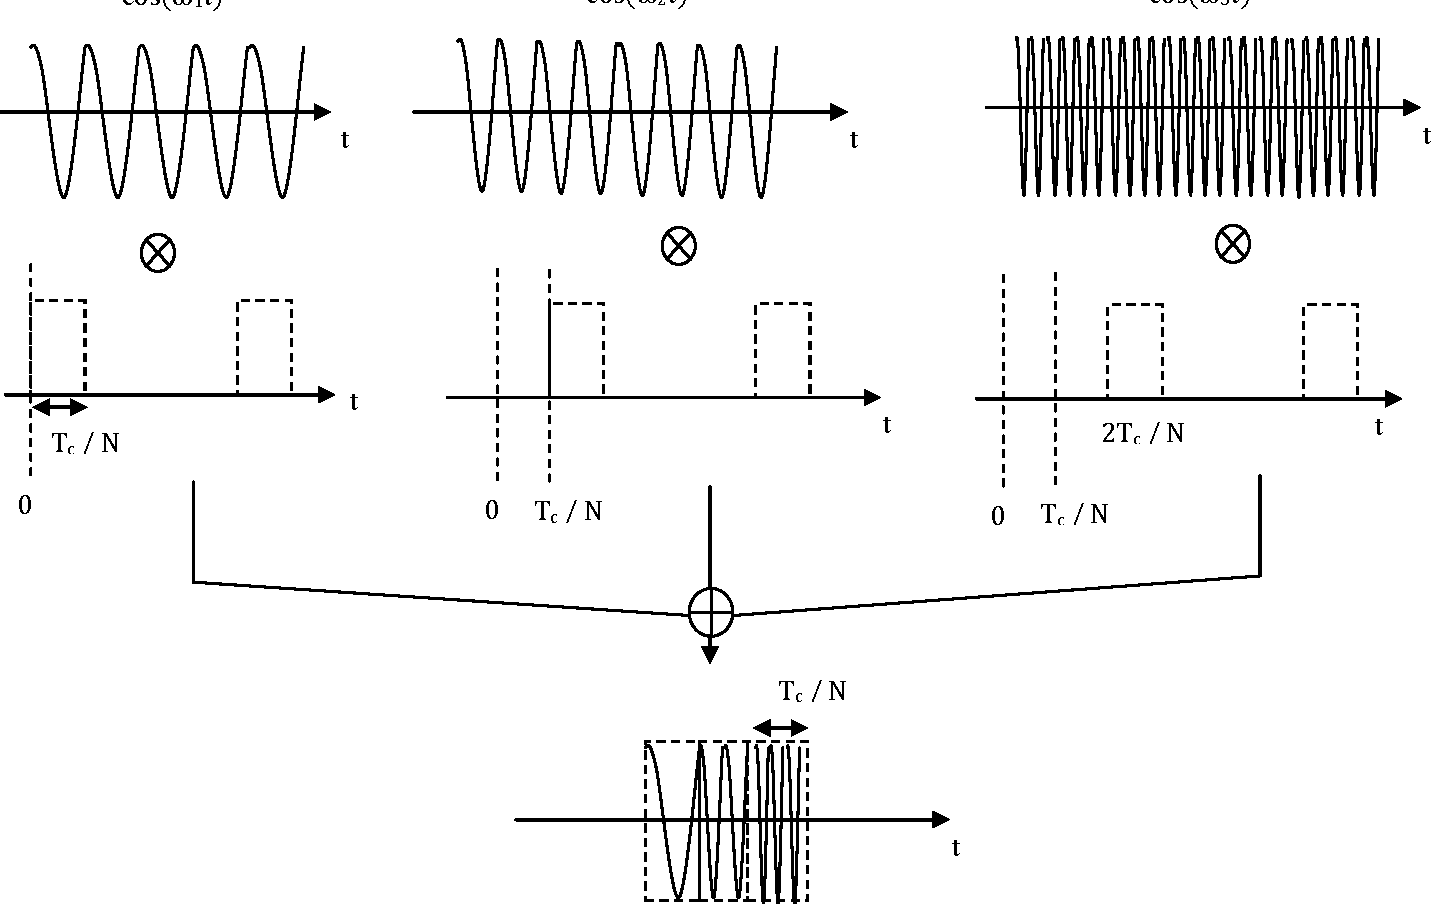 Figure 5 the construction of the FM modulated carrier signal, if the  carrier sweeps from